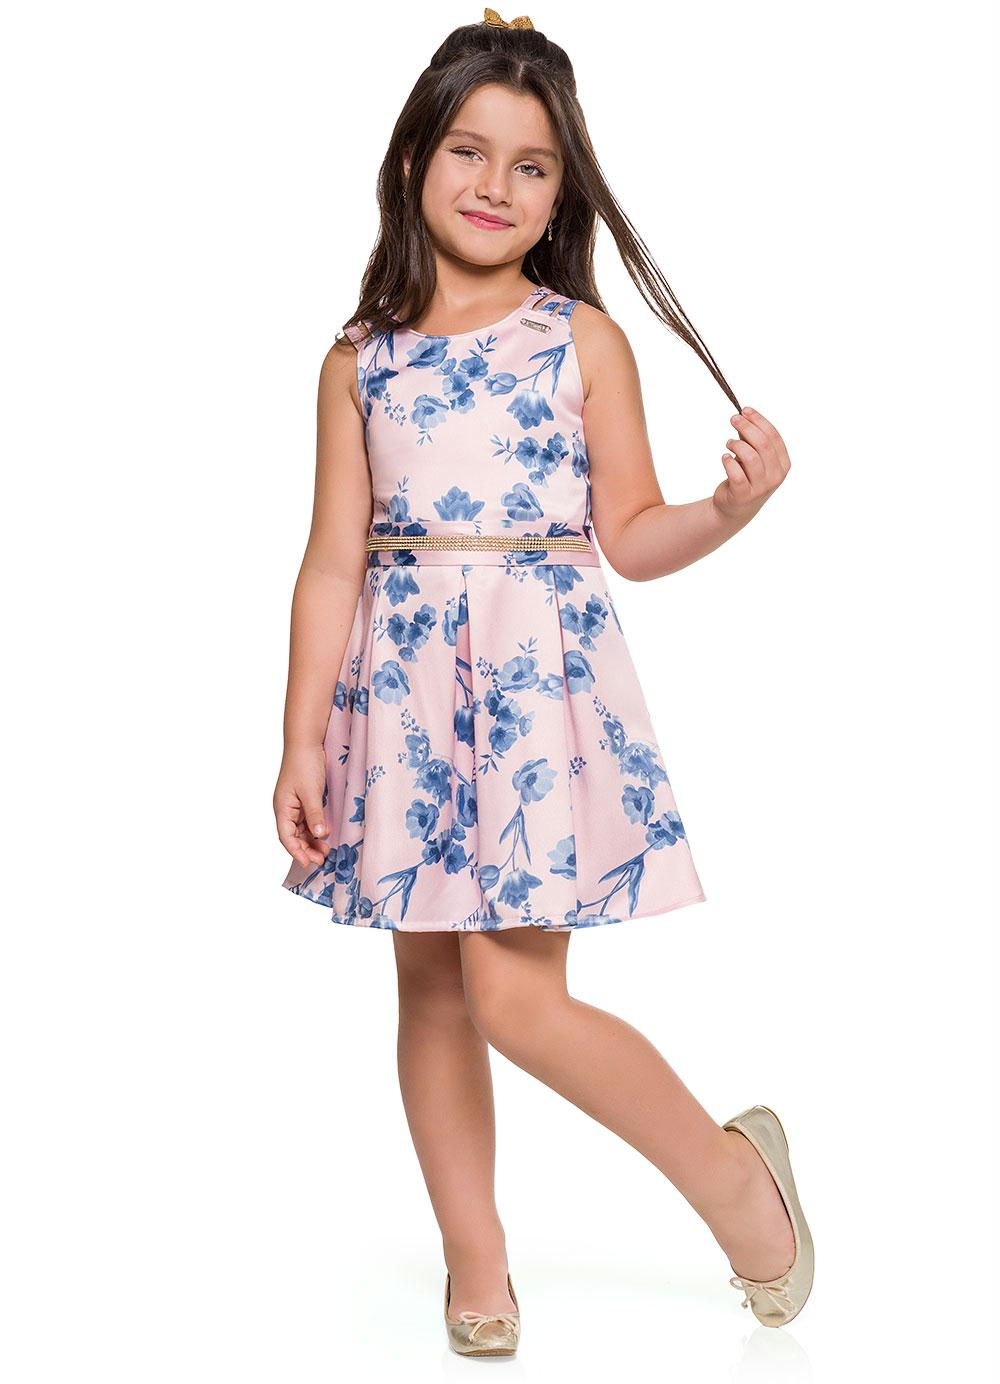 Blossom Party Dress Pleat Style - Hopscotch and Kite